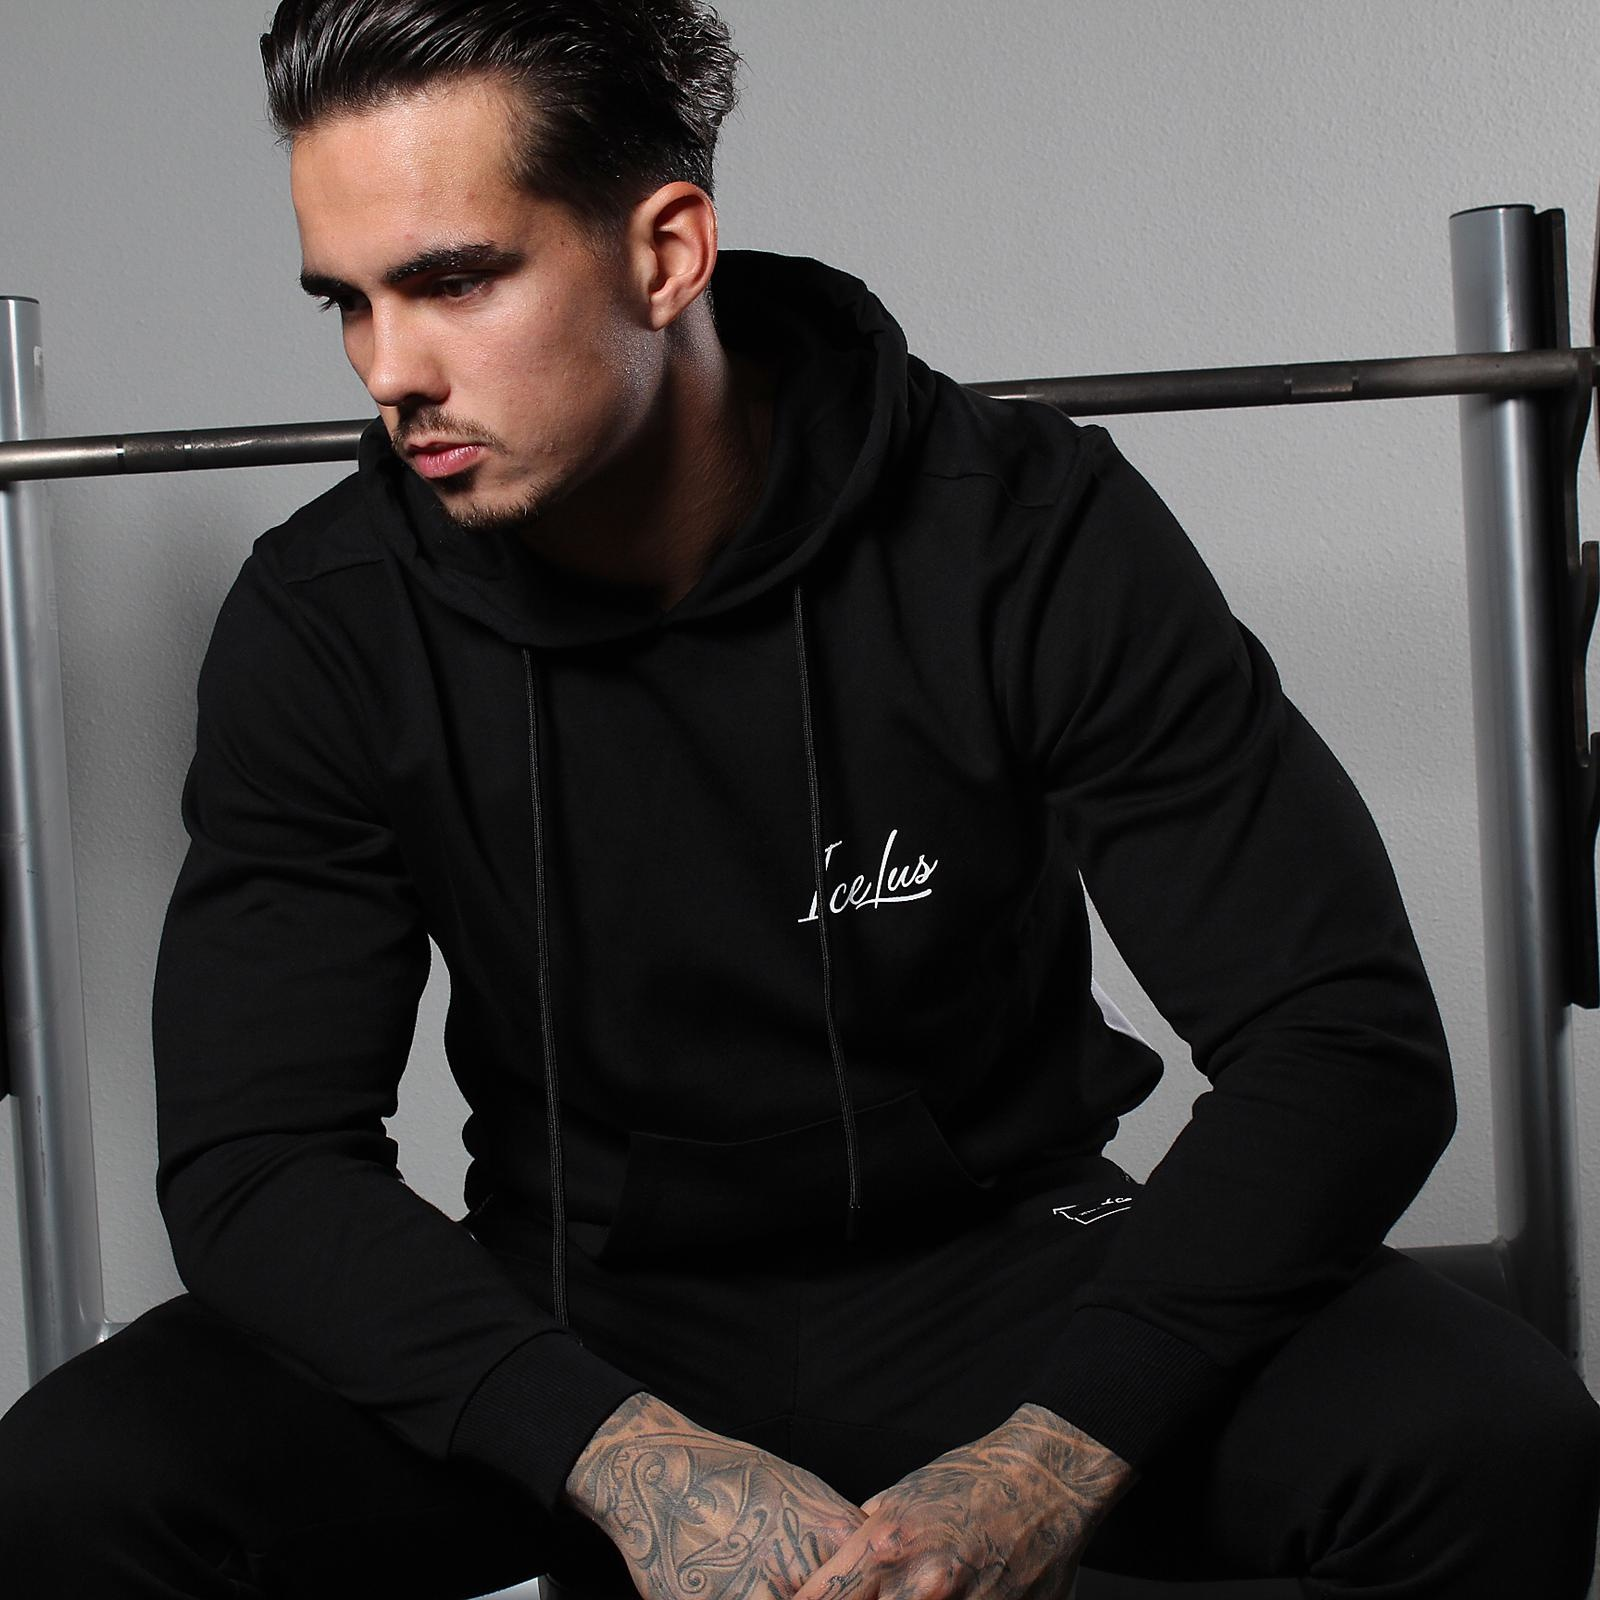 Icelus Clothing Icelus Tracksuit Black